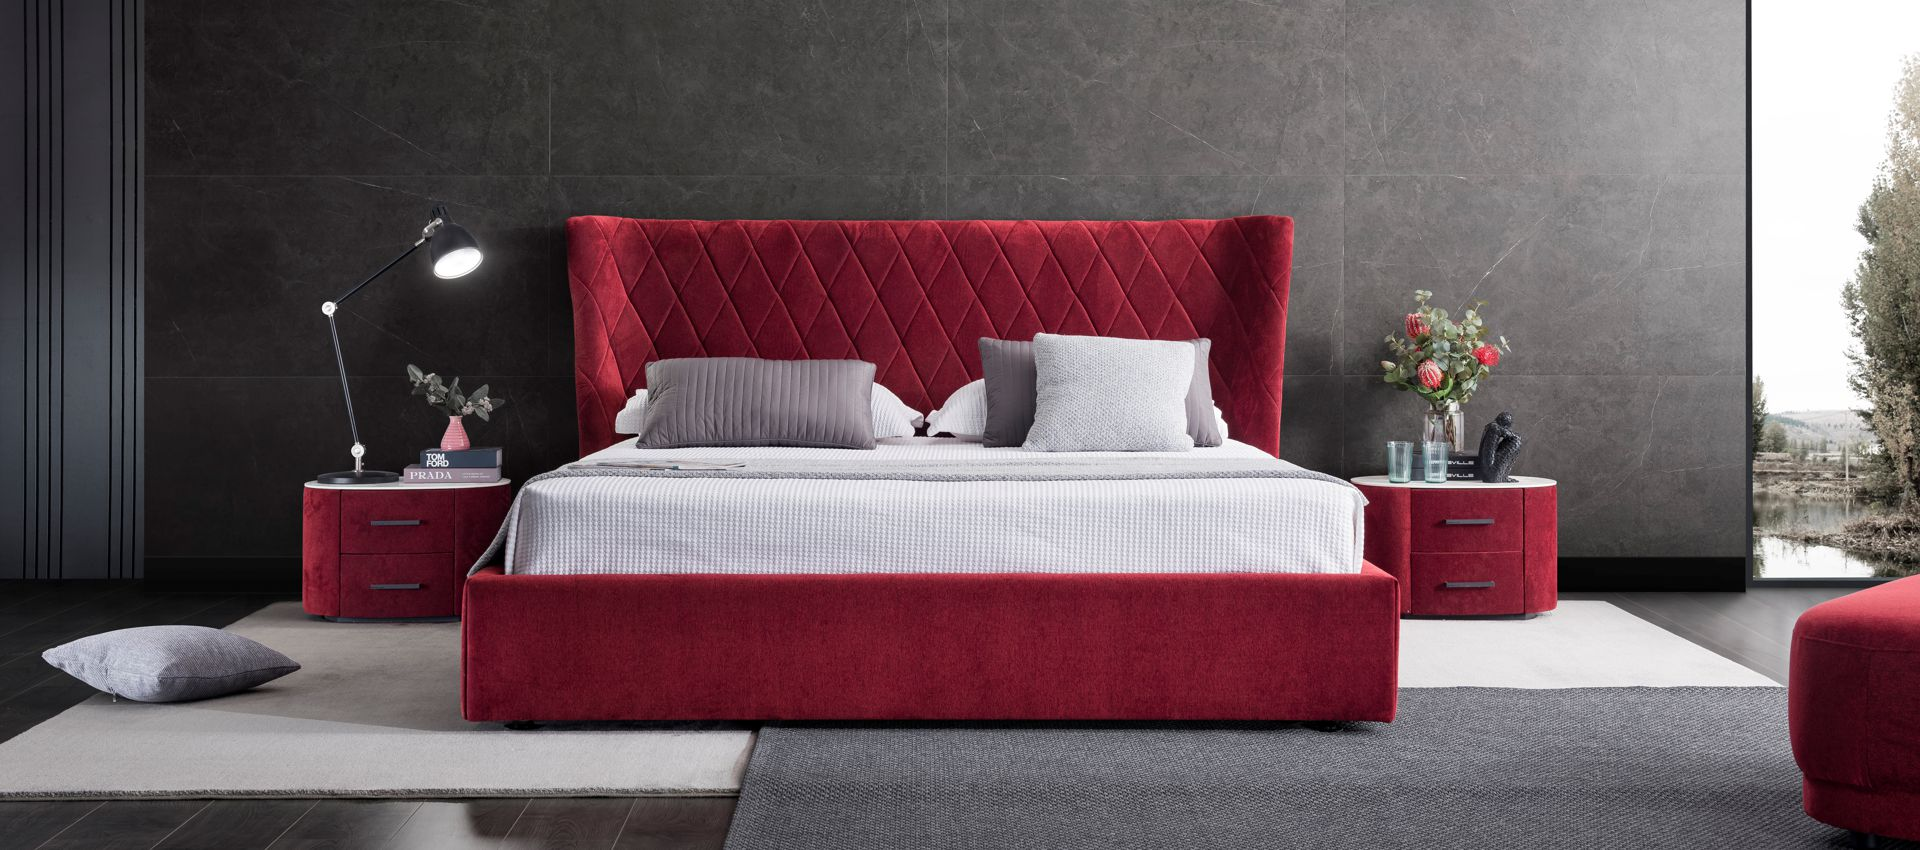 super king bed size in Australia